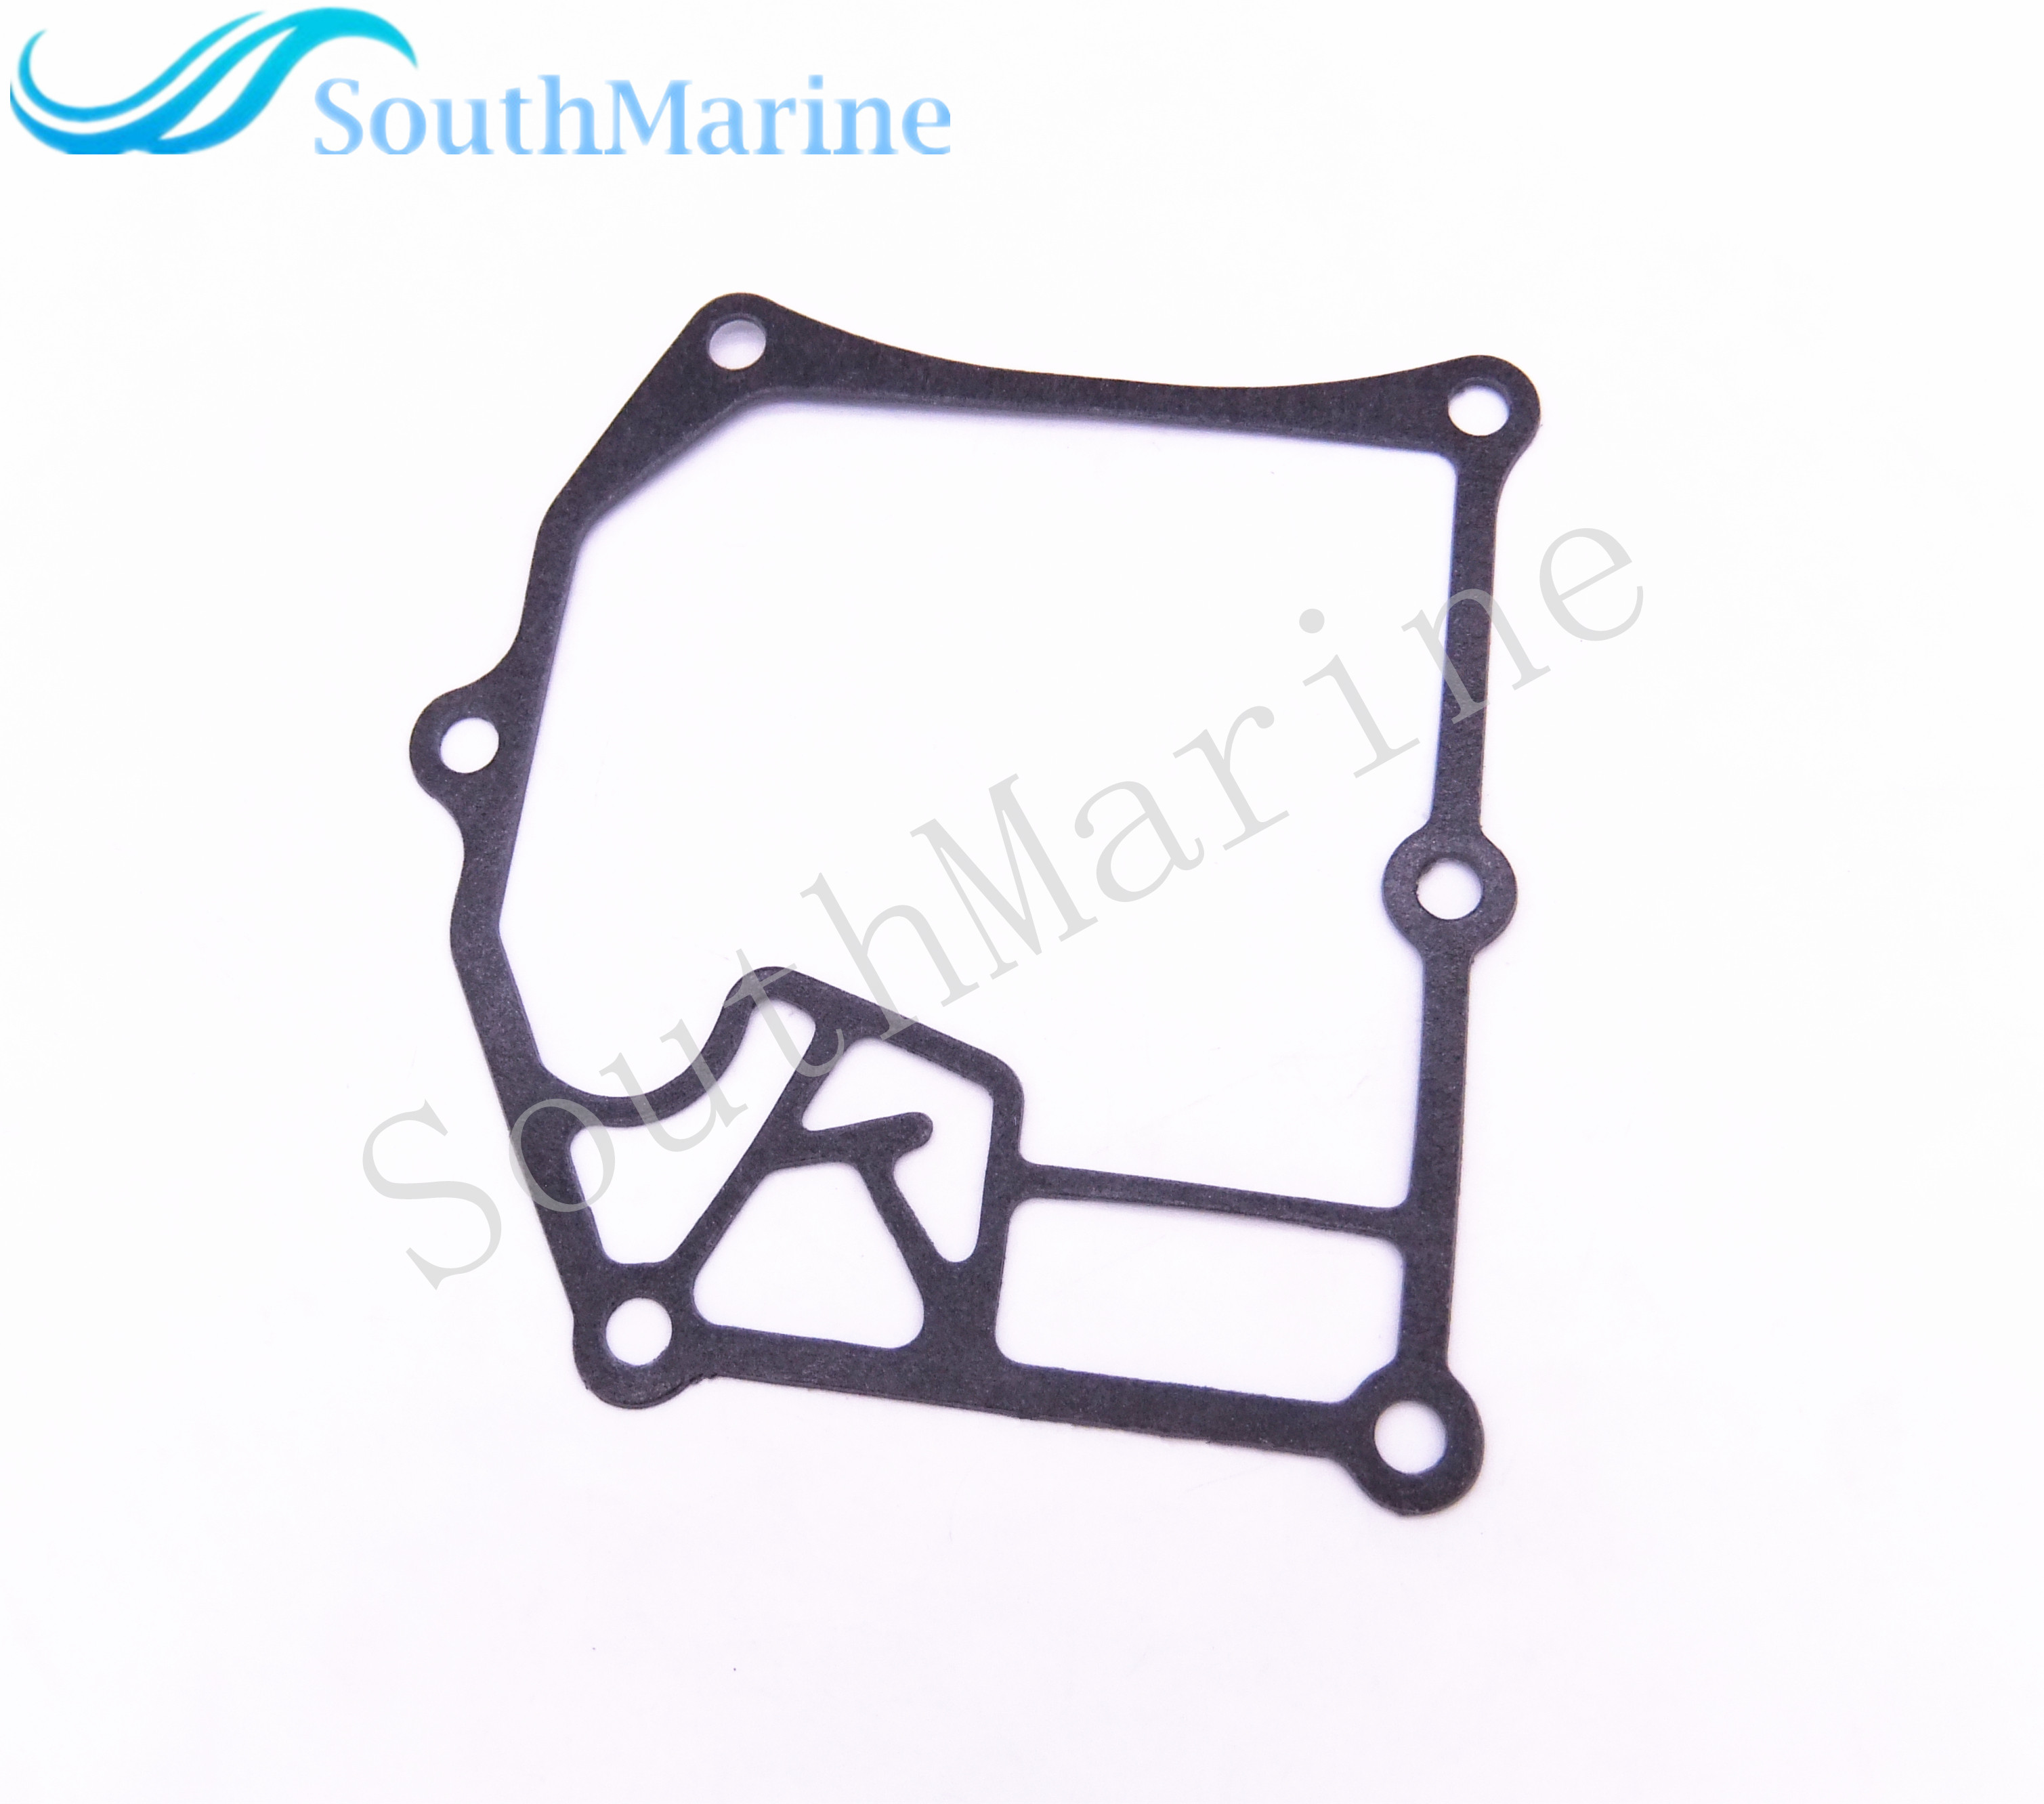 Outboard Engine 69M-11193-A0 Head Cover Gasket for Yamaha 4-Stroke F2.5 Boat Motor Free Shipping